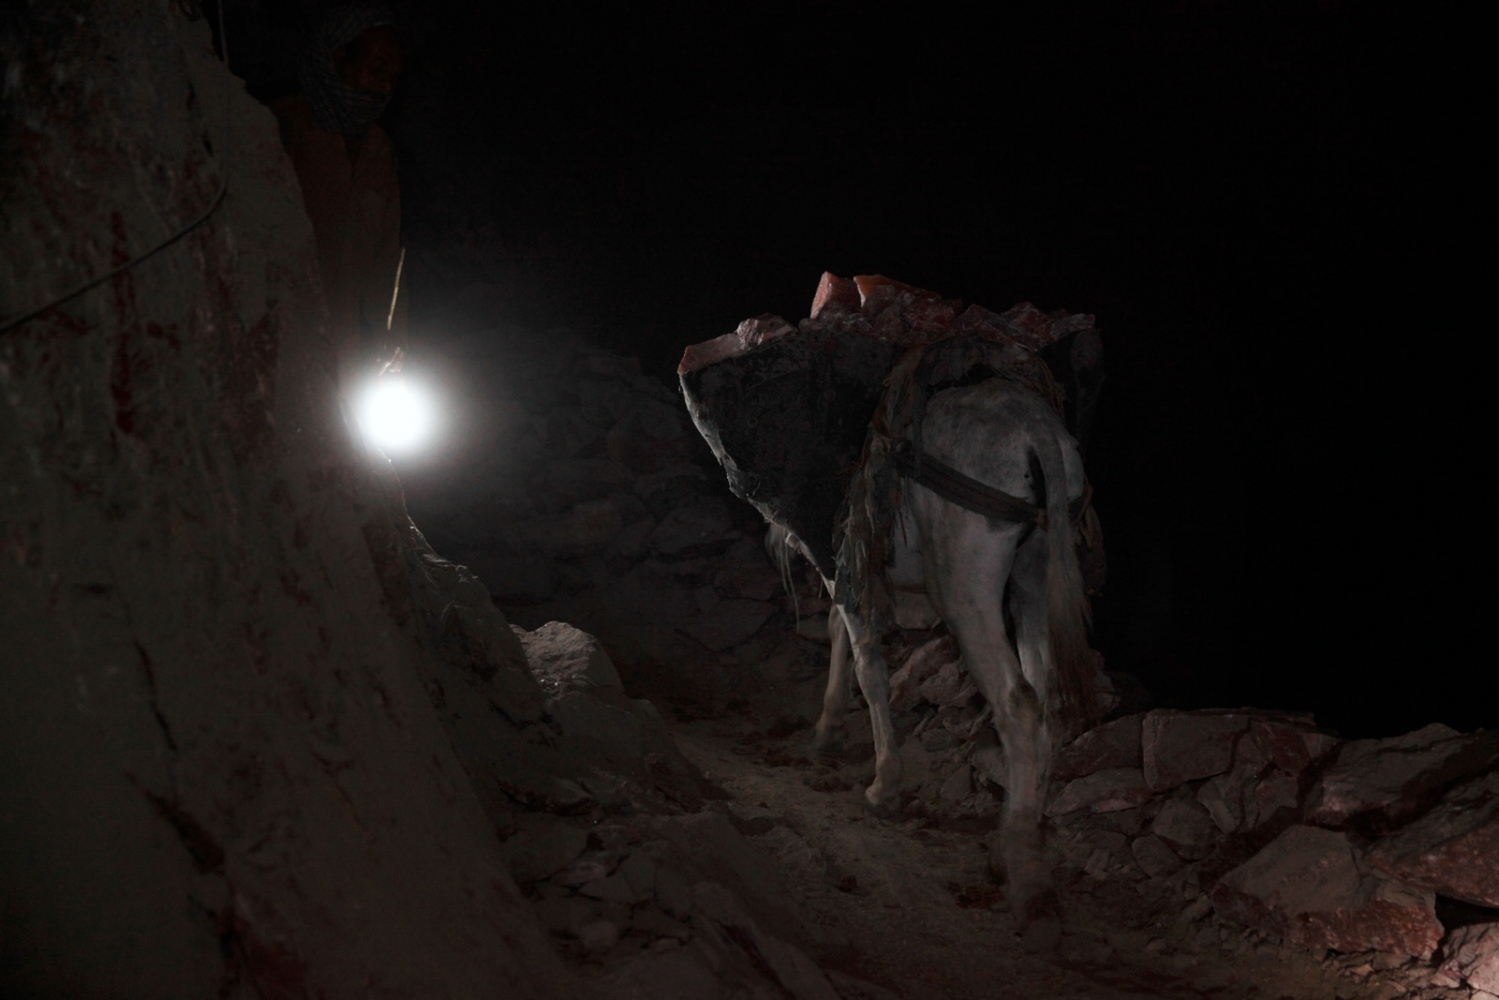 Throughout the night donkeys are still used at the remote Kalabagh salt mine. Reaching areas that tractors still can't get to, the donkeys carry the rock salt to areas that is then collected and taken out of the mine during the day by tractors.